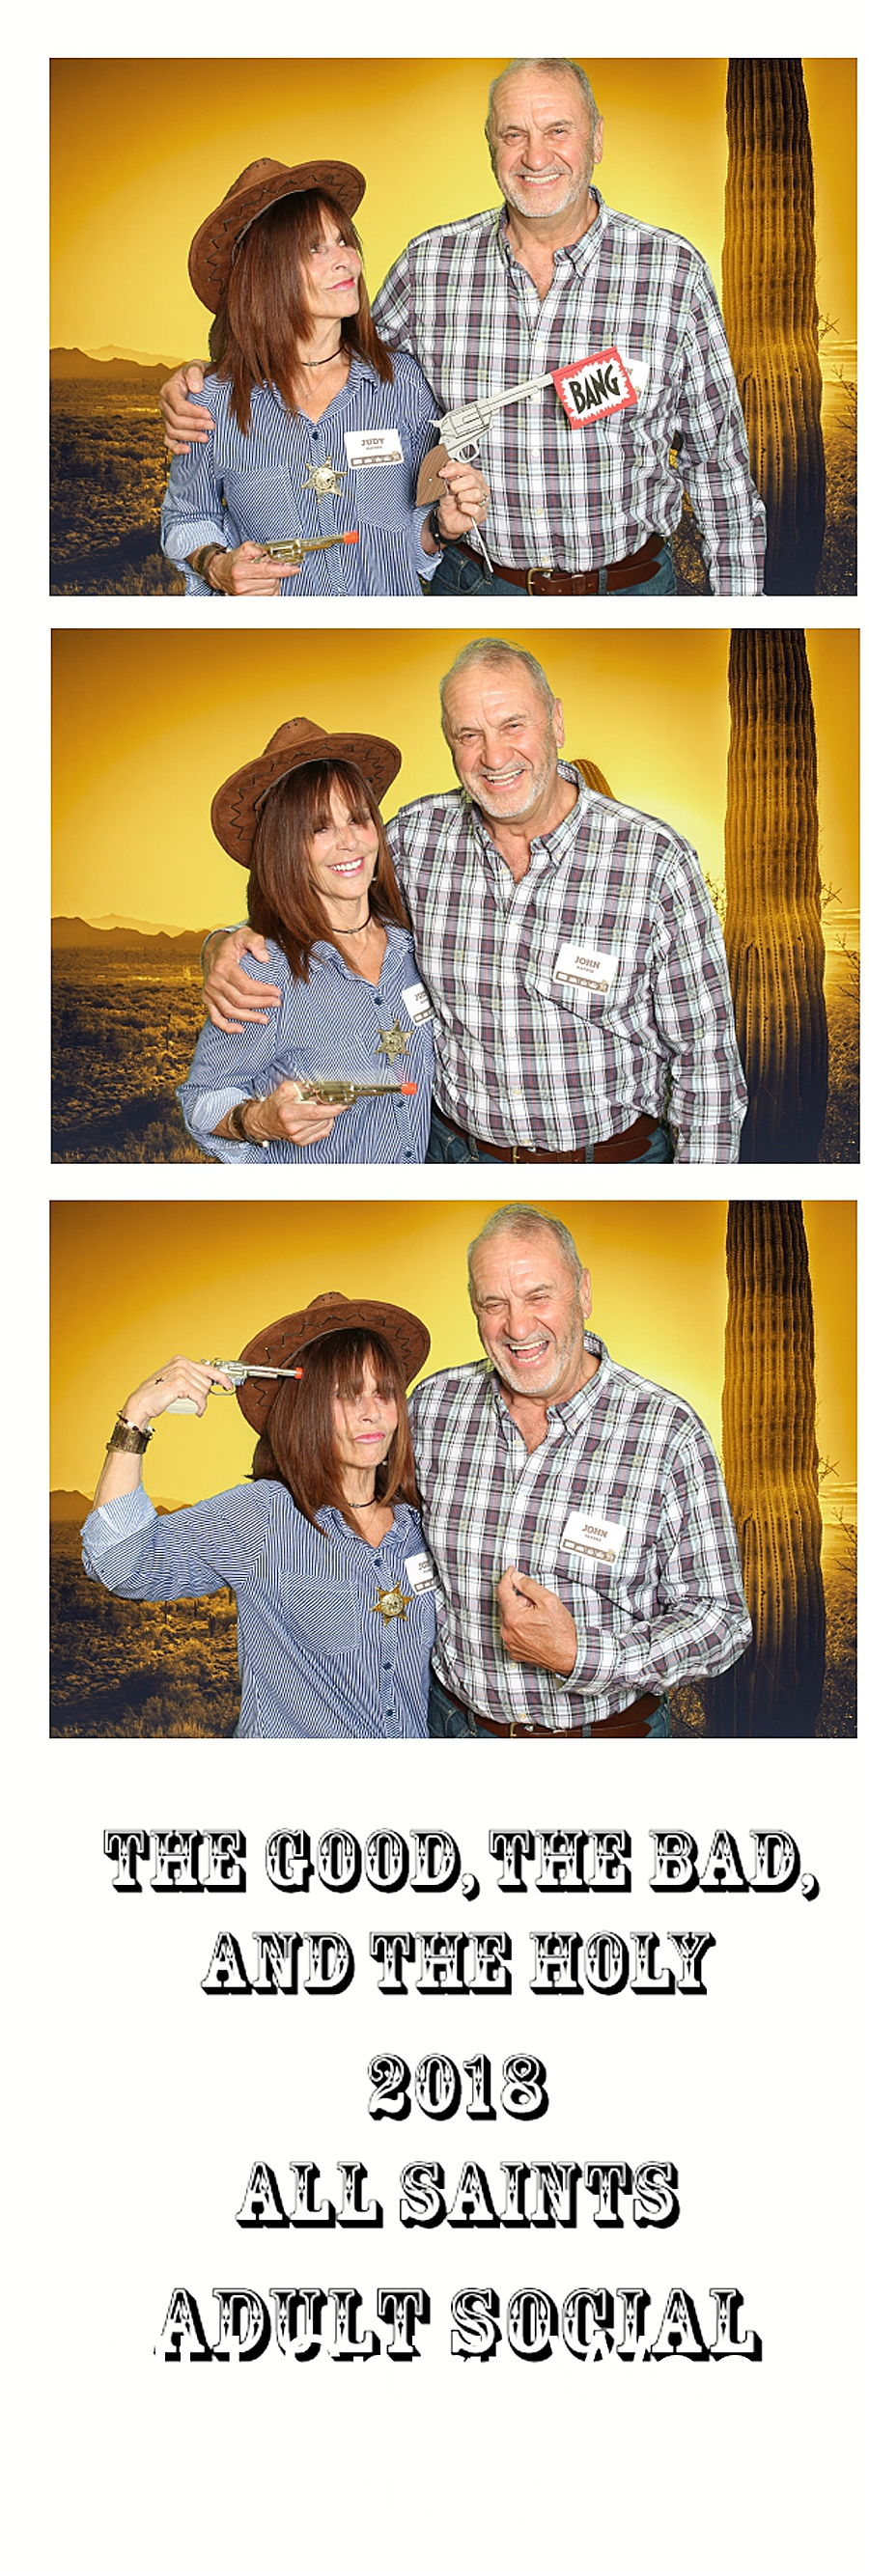 Knoxville Photo Booth_1339.jpg